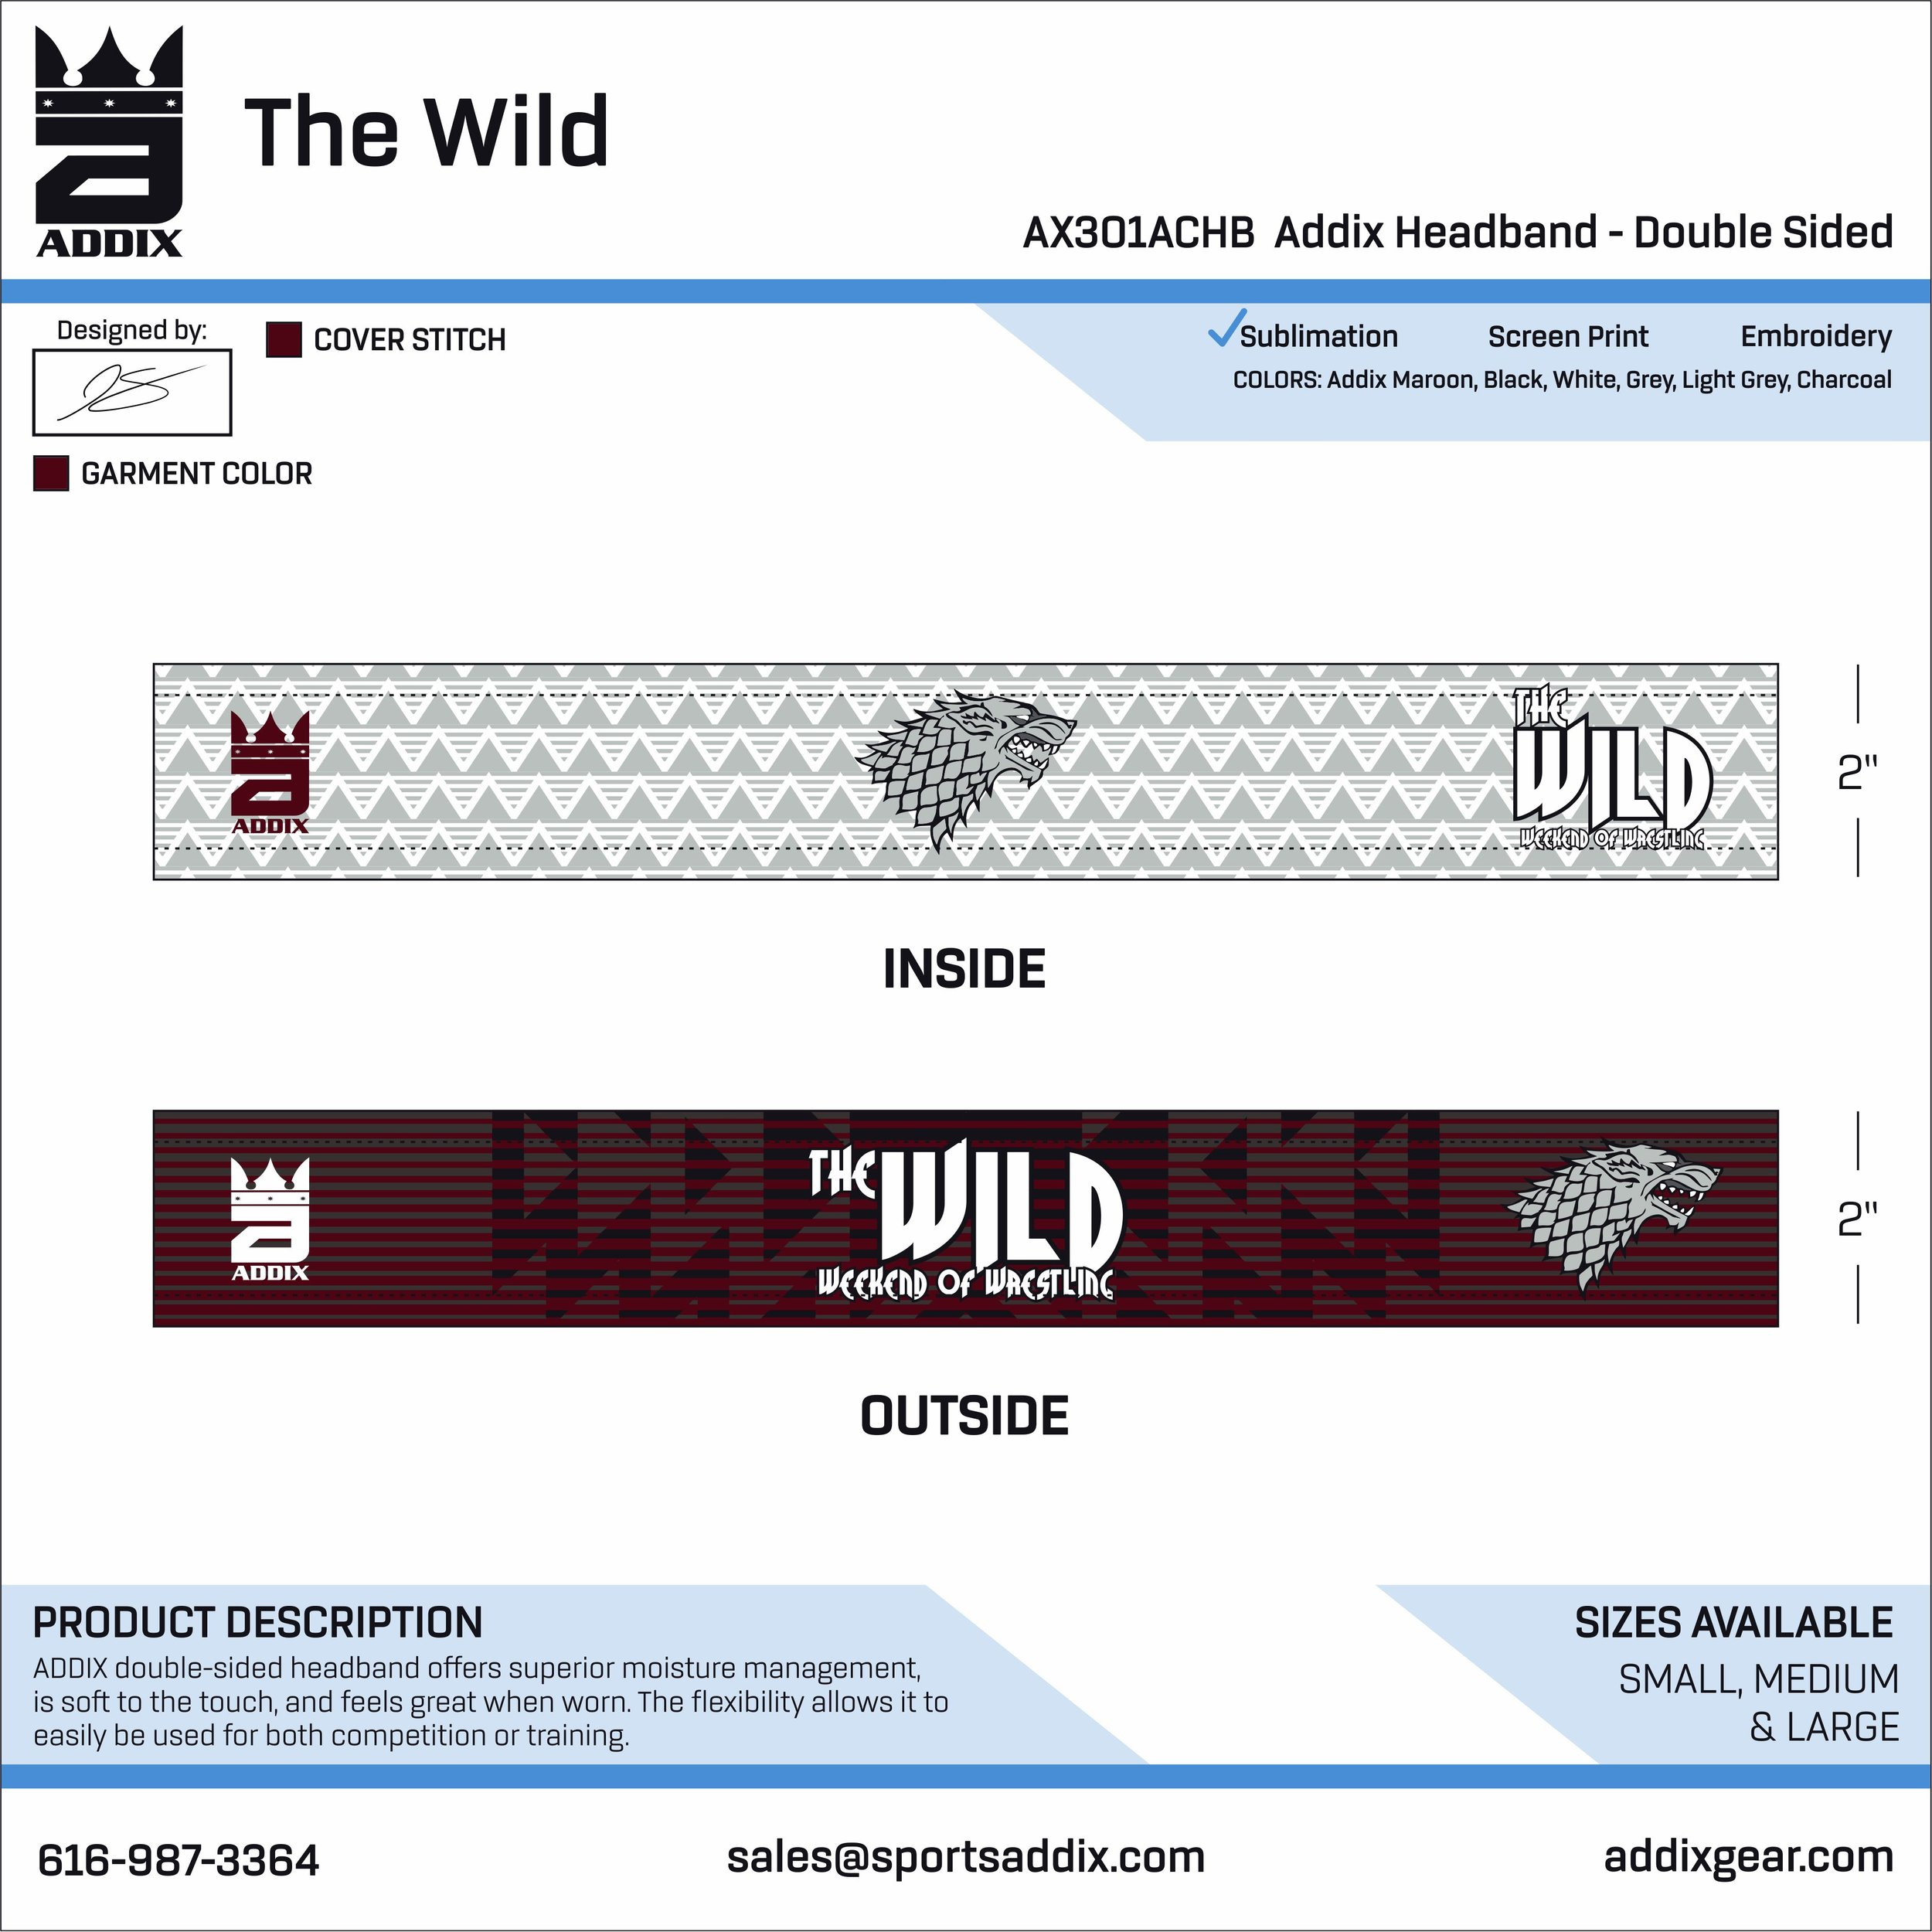 The Wild_2019_3-5_JE_Full Sub Headband.jpg